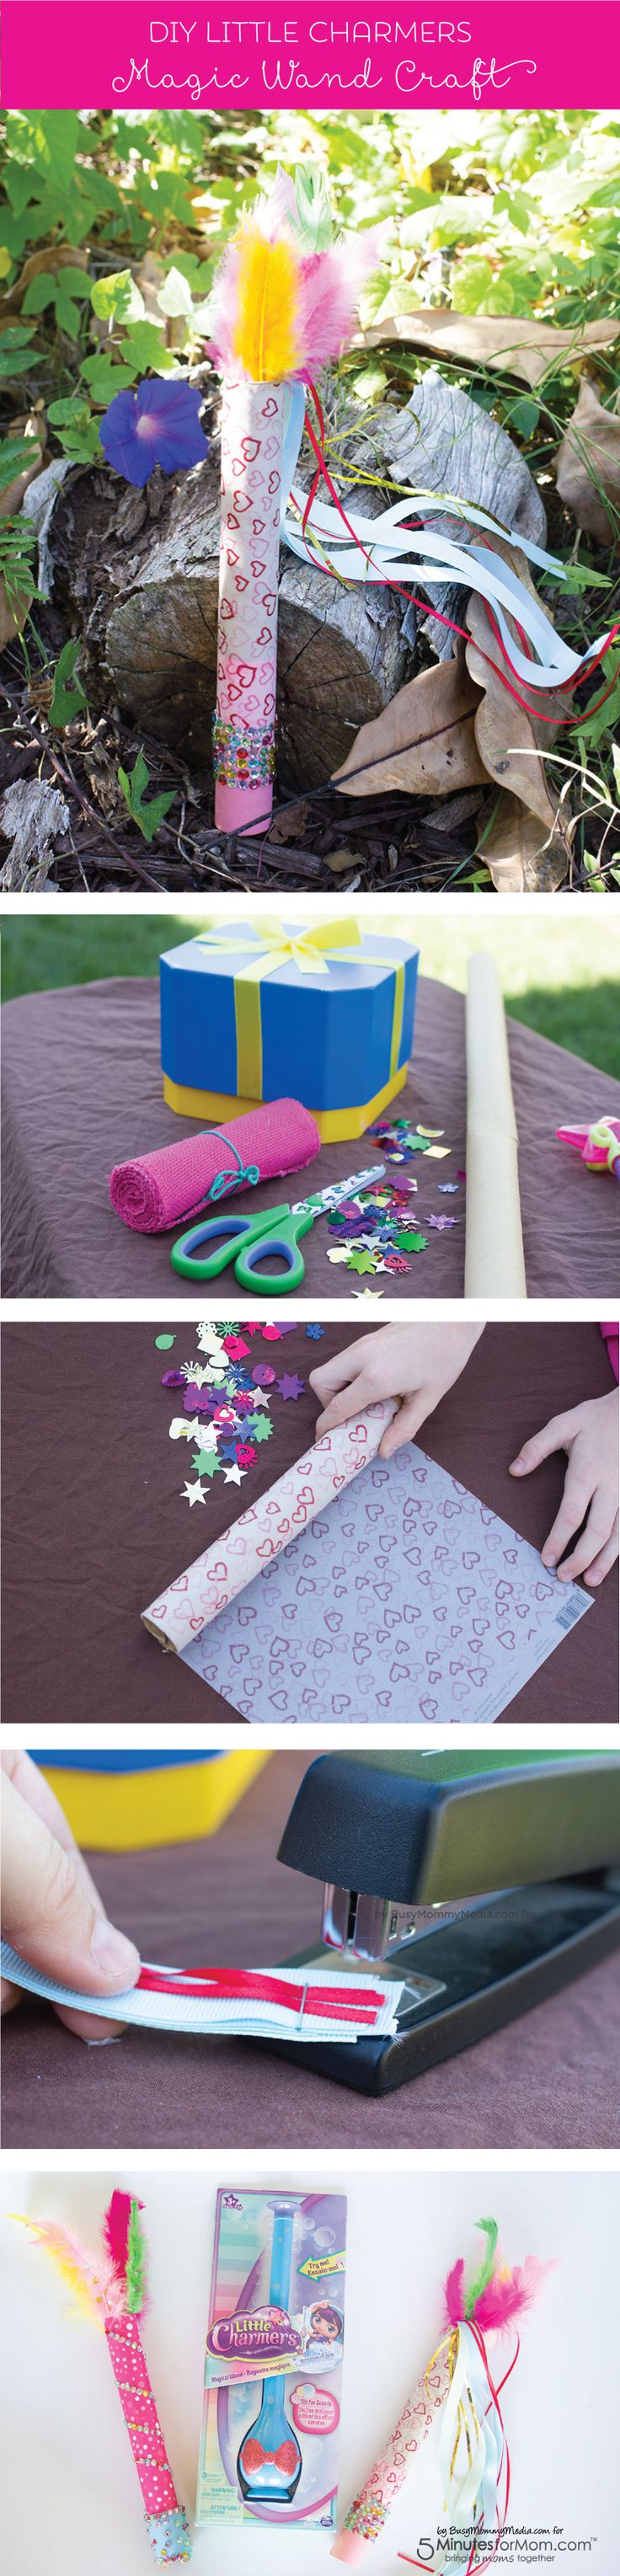 DIY Magic Wand Craft - Your little girls will love making these magic wands